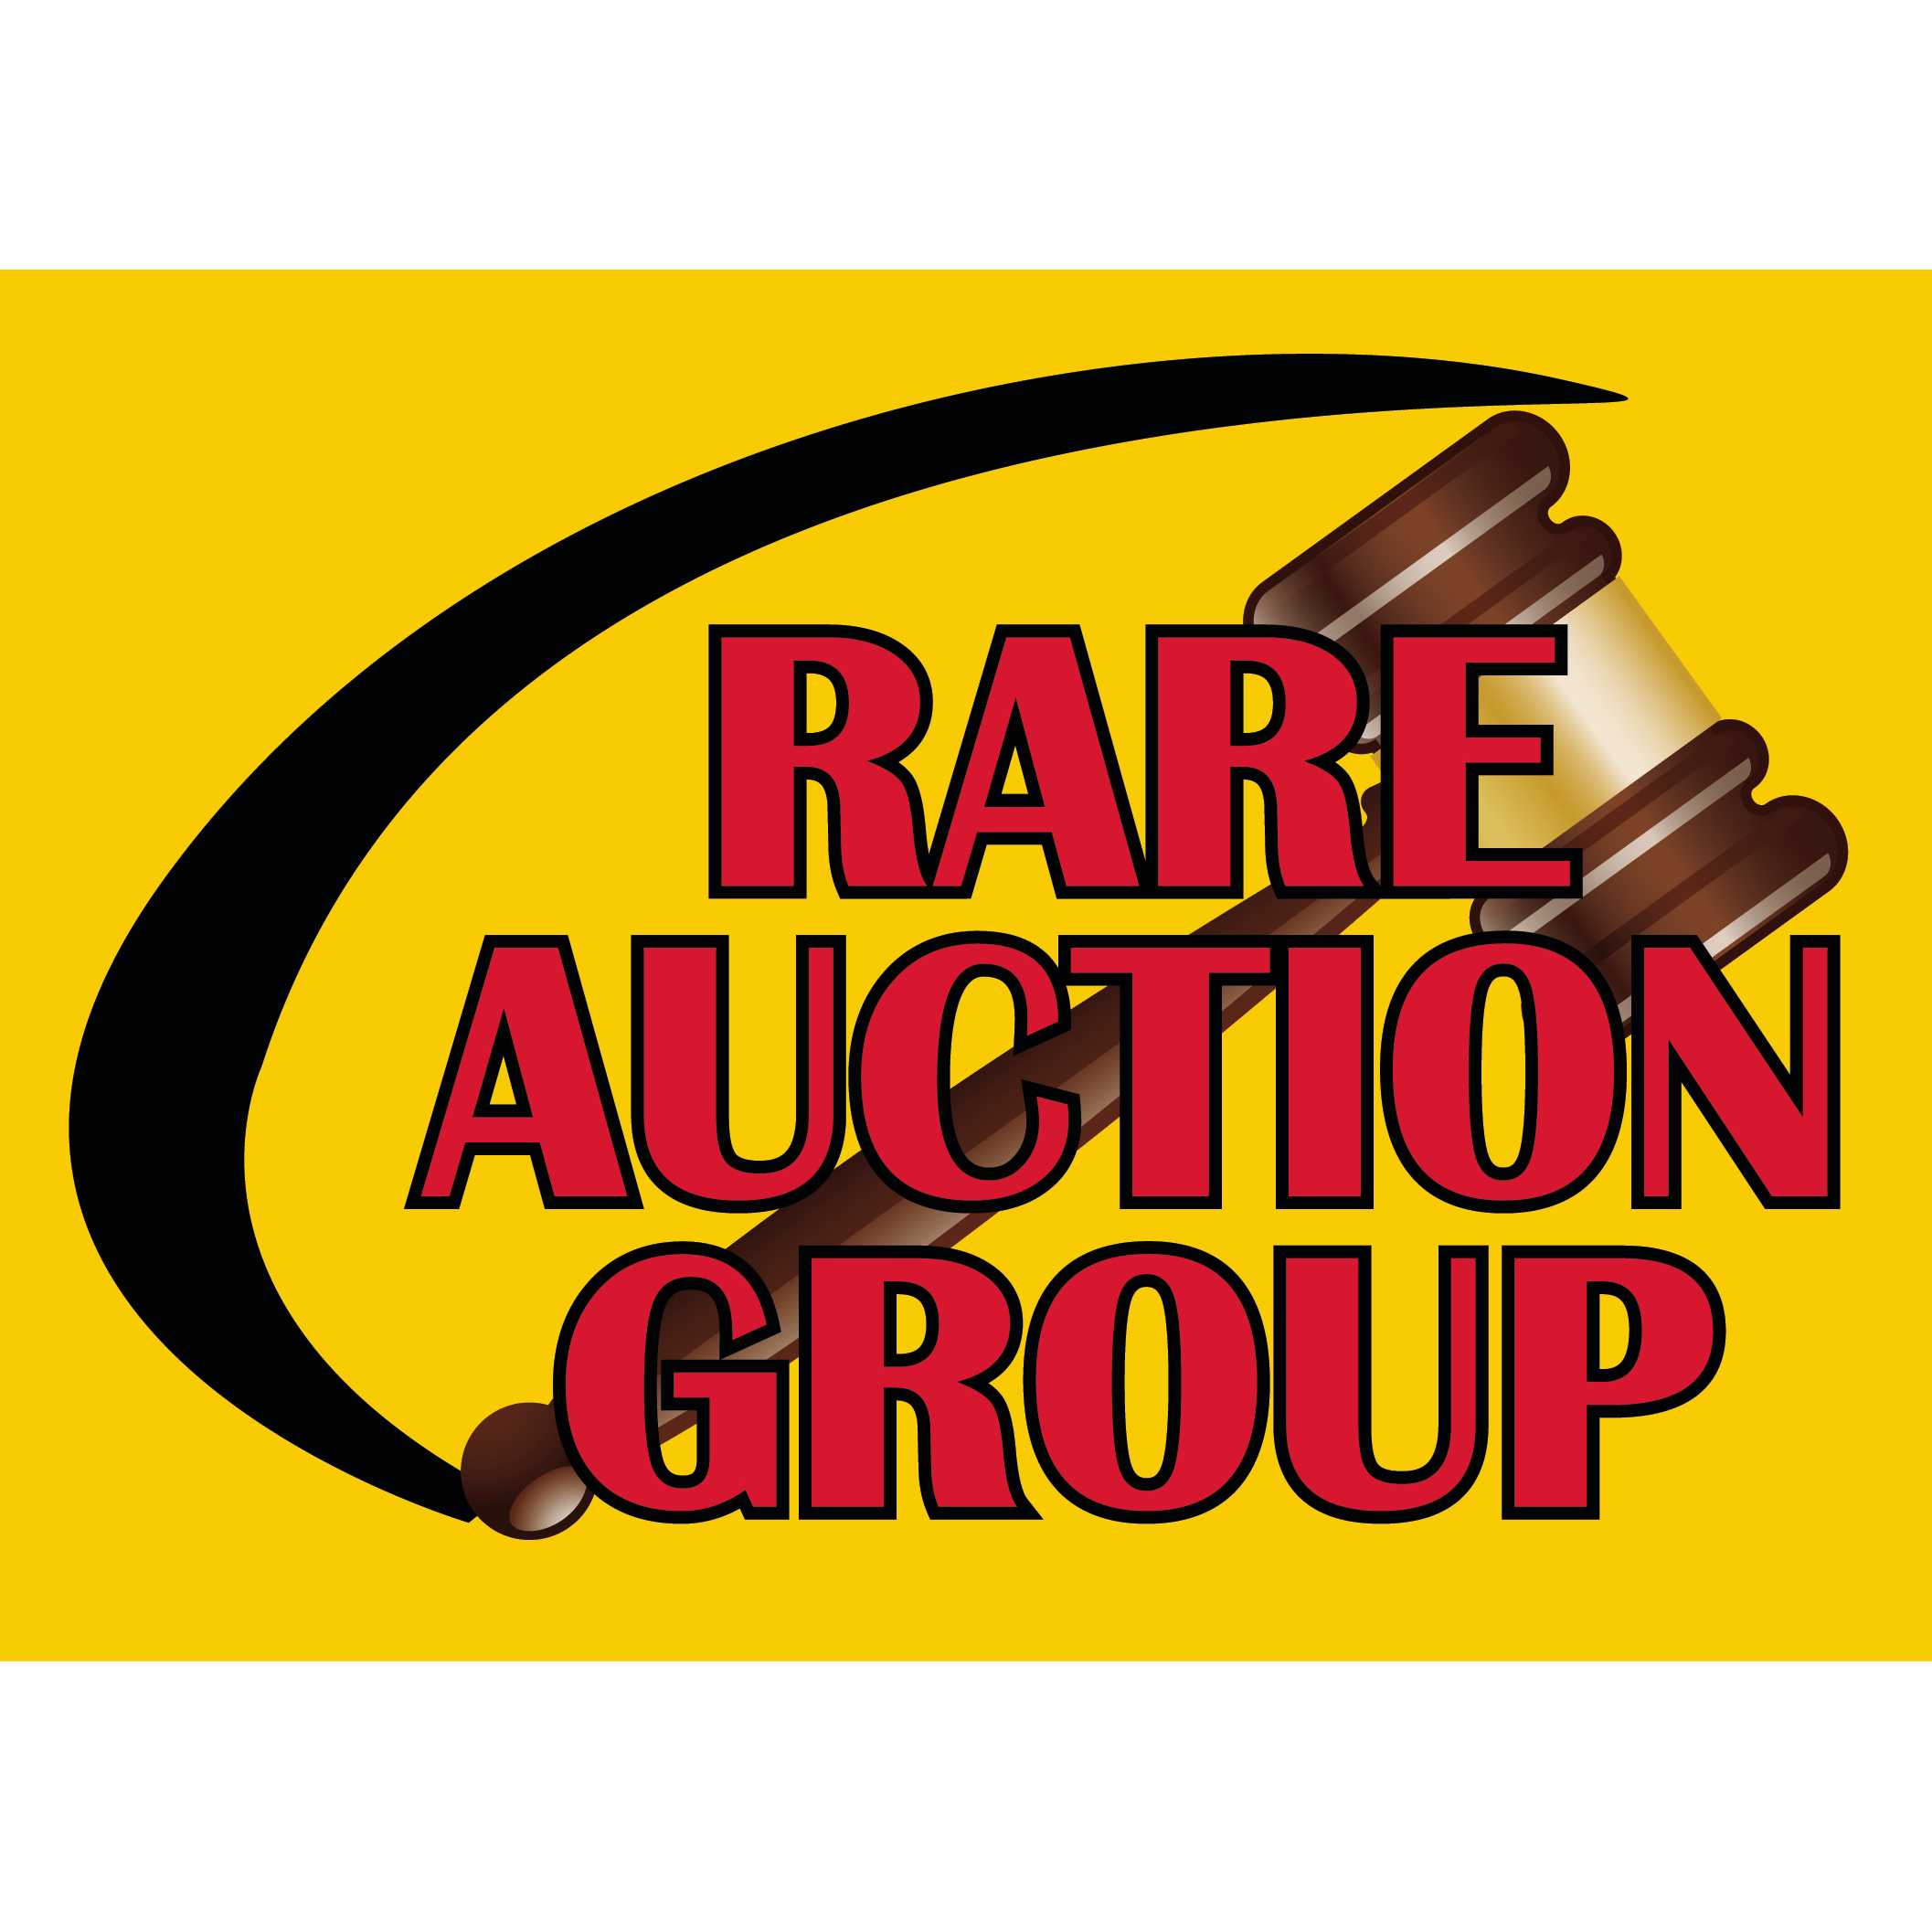 RARE Auction Group - Robert Alexander Real Estate & Auction Company